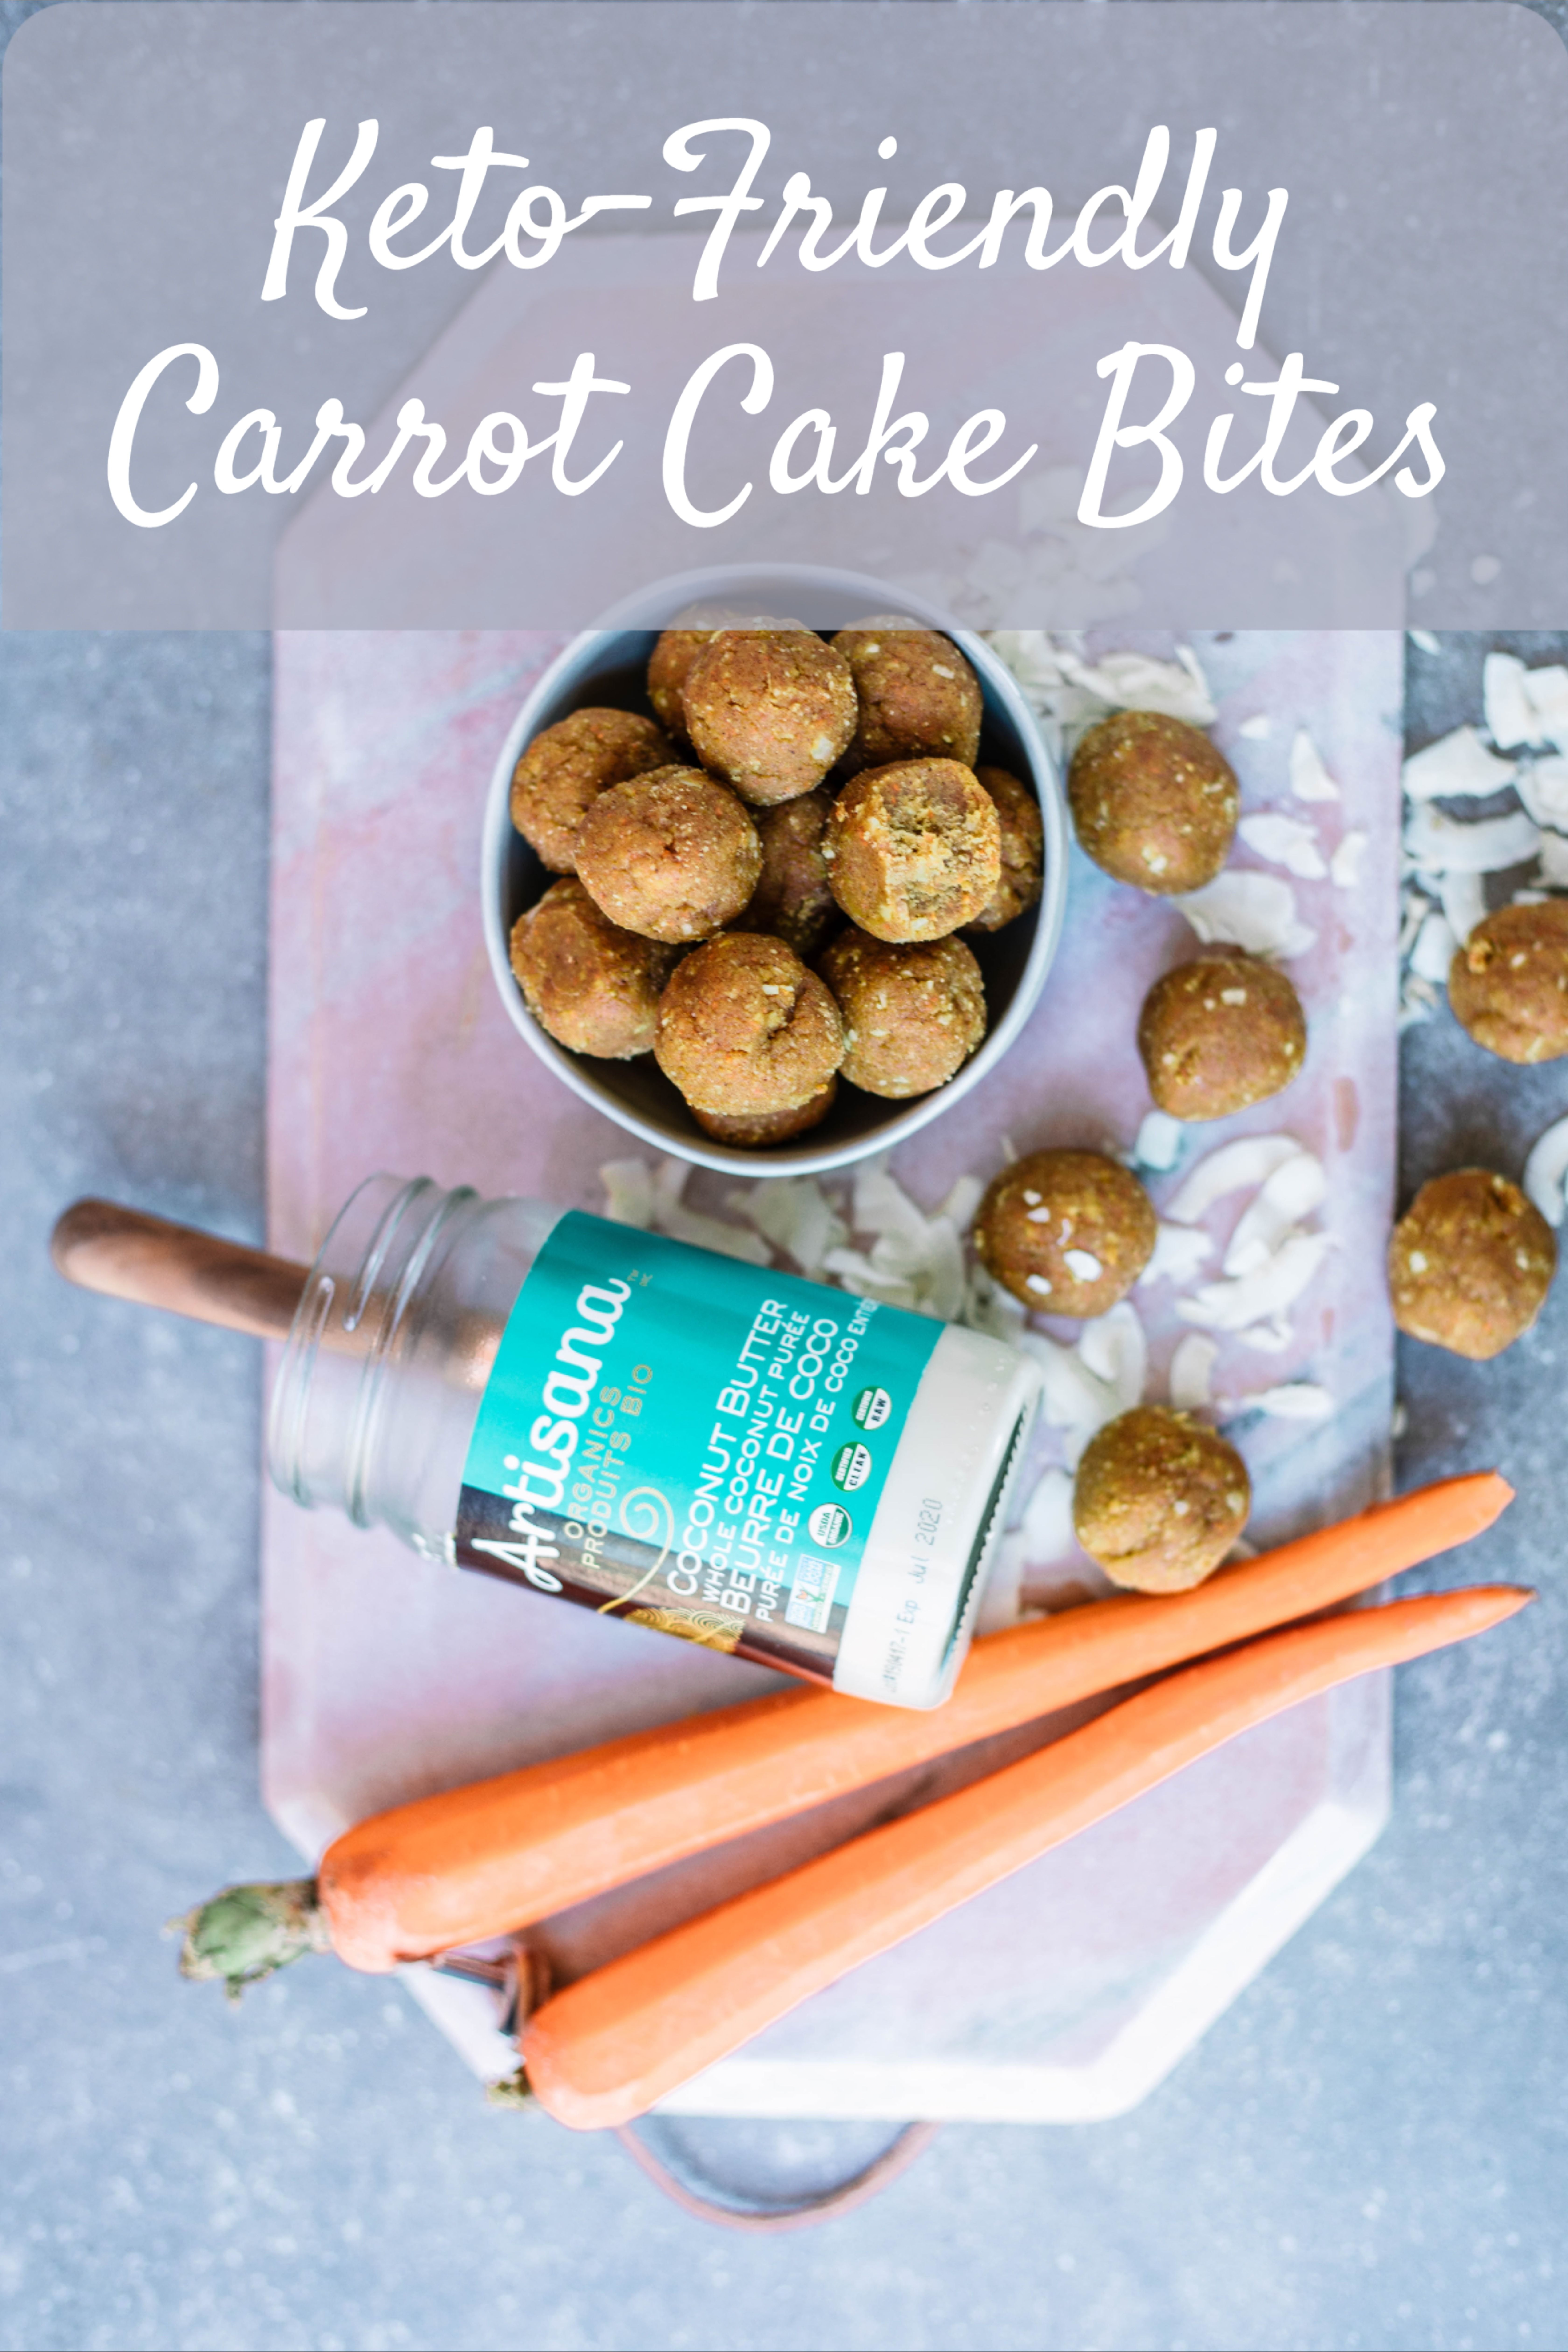 In need of a perfect keto snack these carrot cake bites